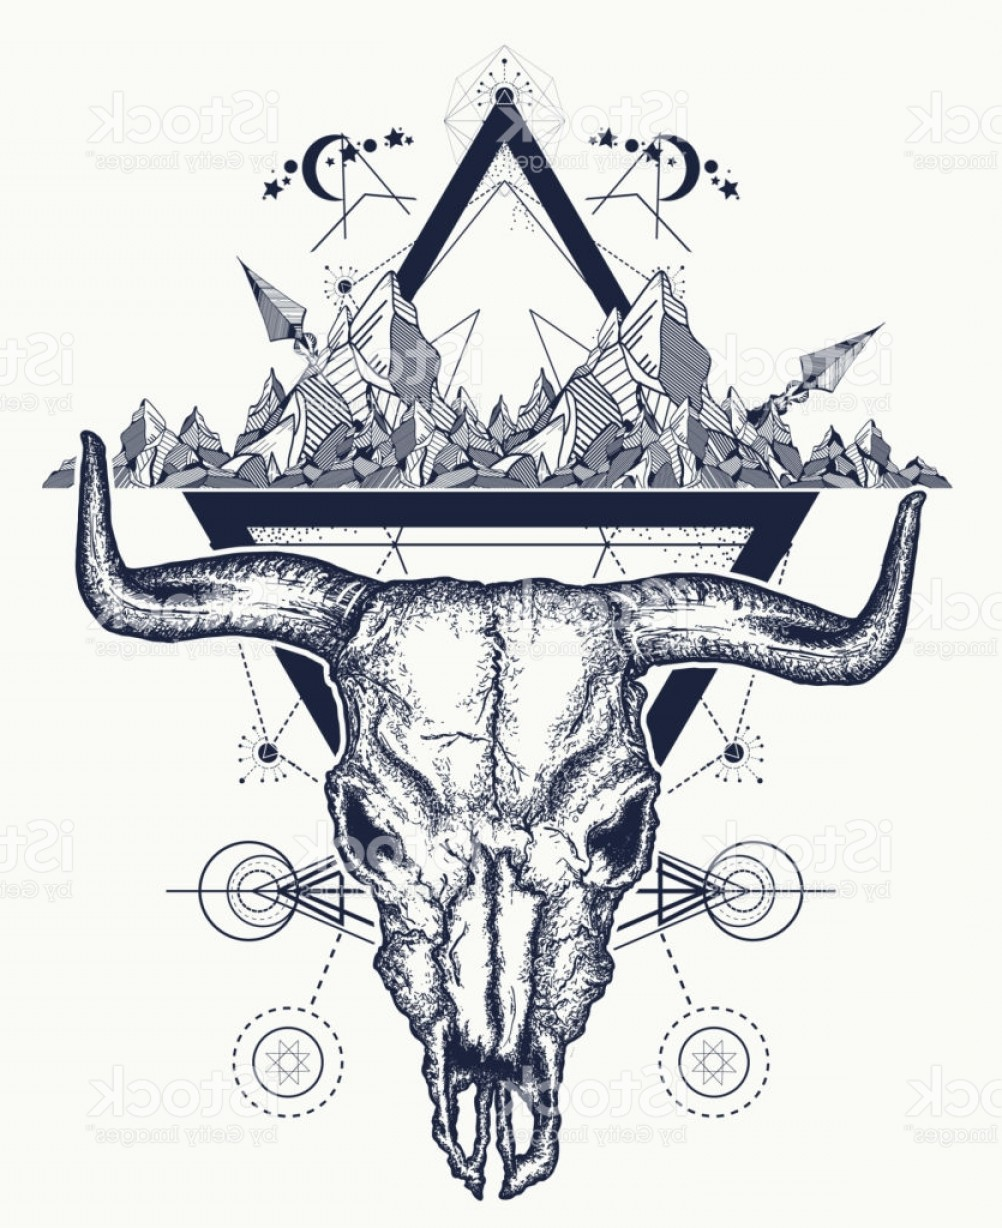 Sacred Heart Vector Genius: Bull Skull And Mountains Tattoo Native American Bull Skull Symbol Of Secret Gm